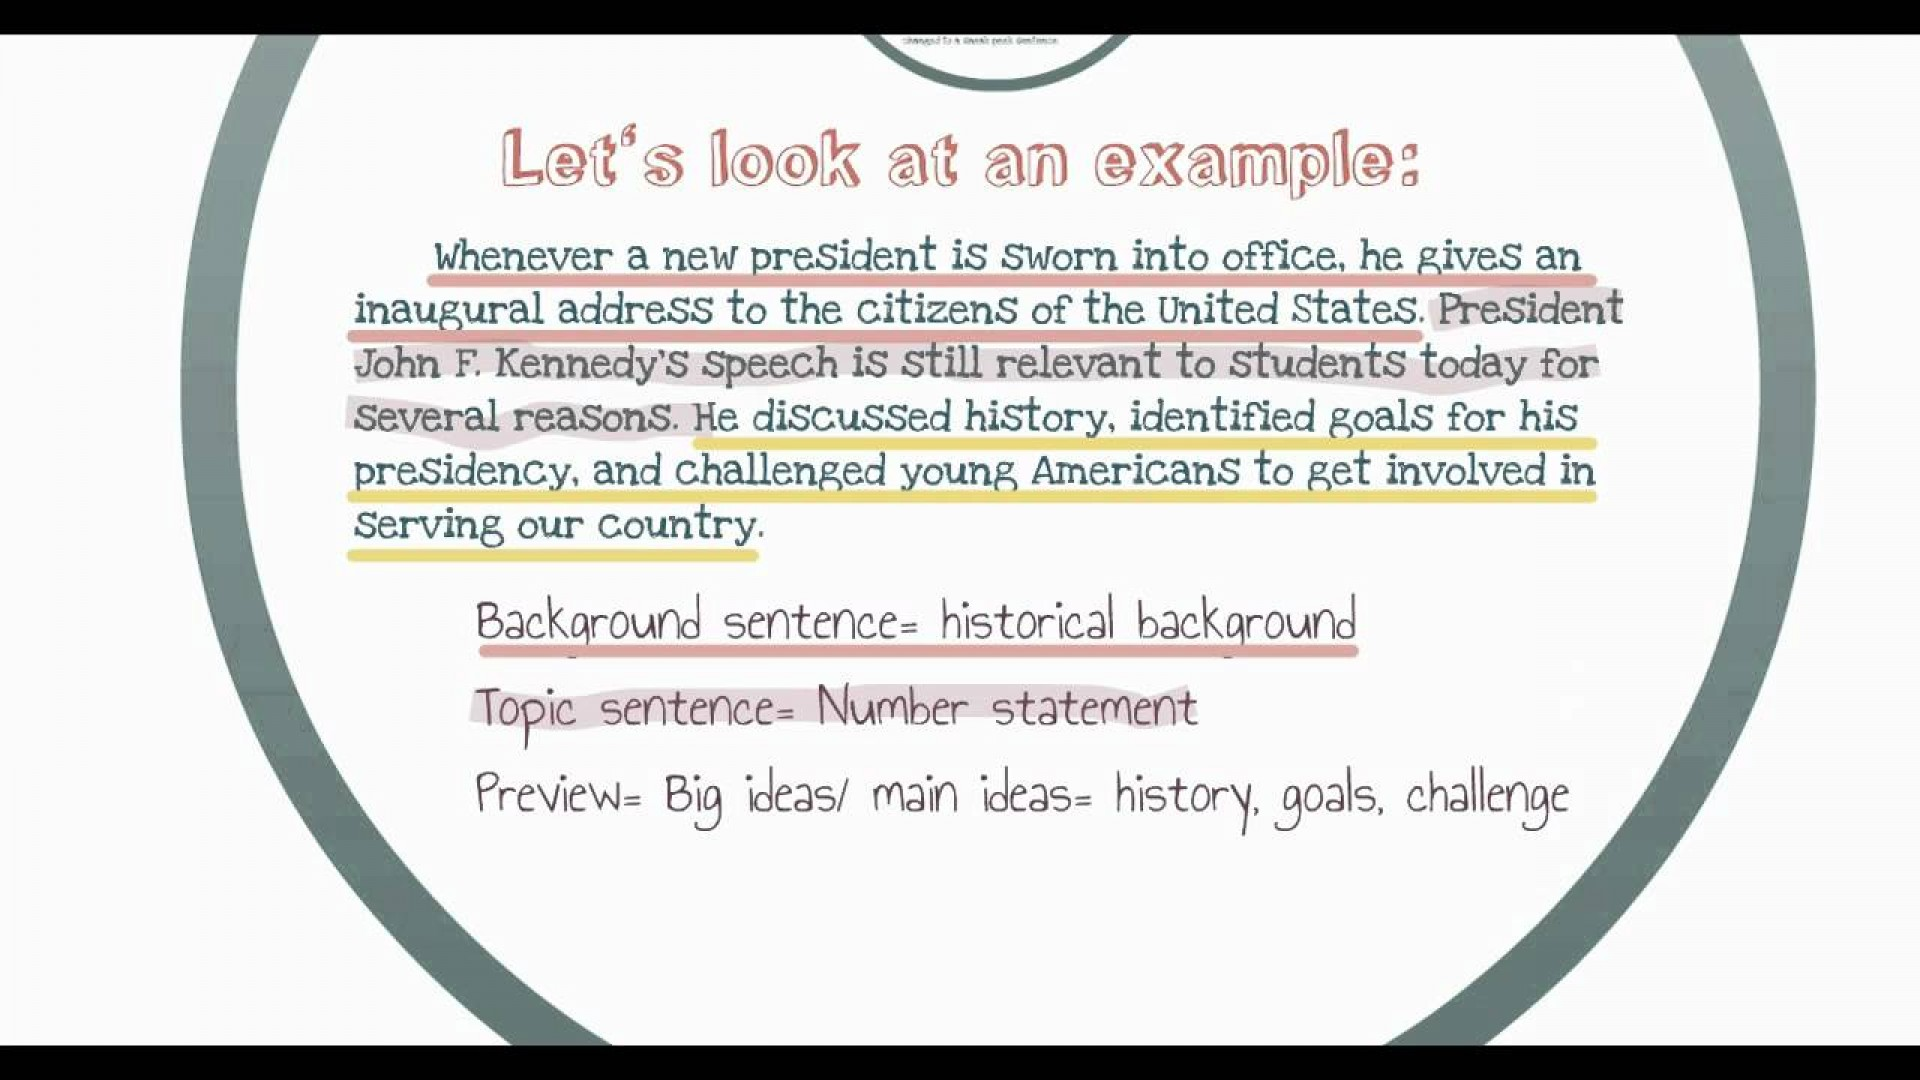 013 Essay Example How To Start Paragraph In An Fascinating A Rebuttal Off Research Paper 1920